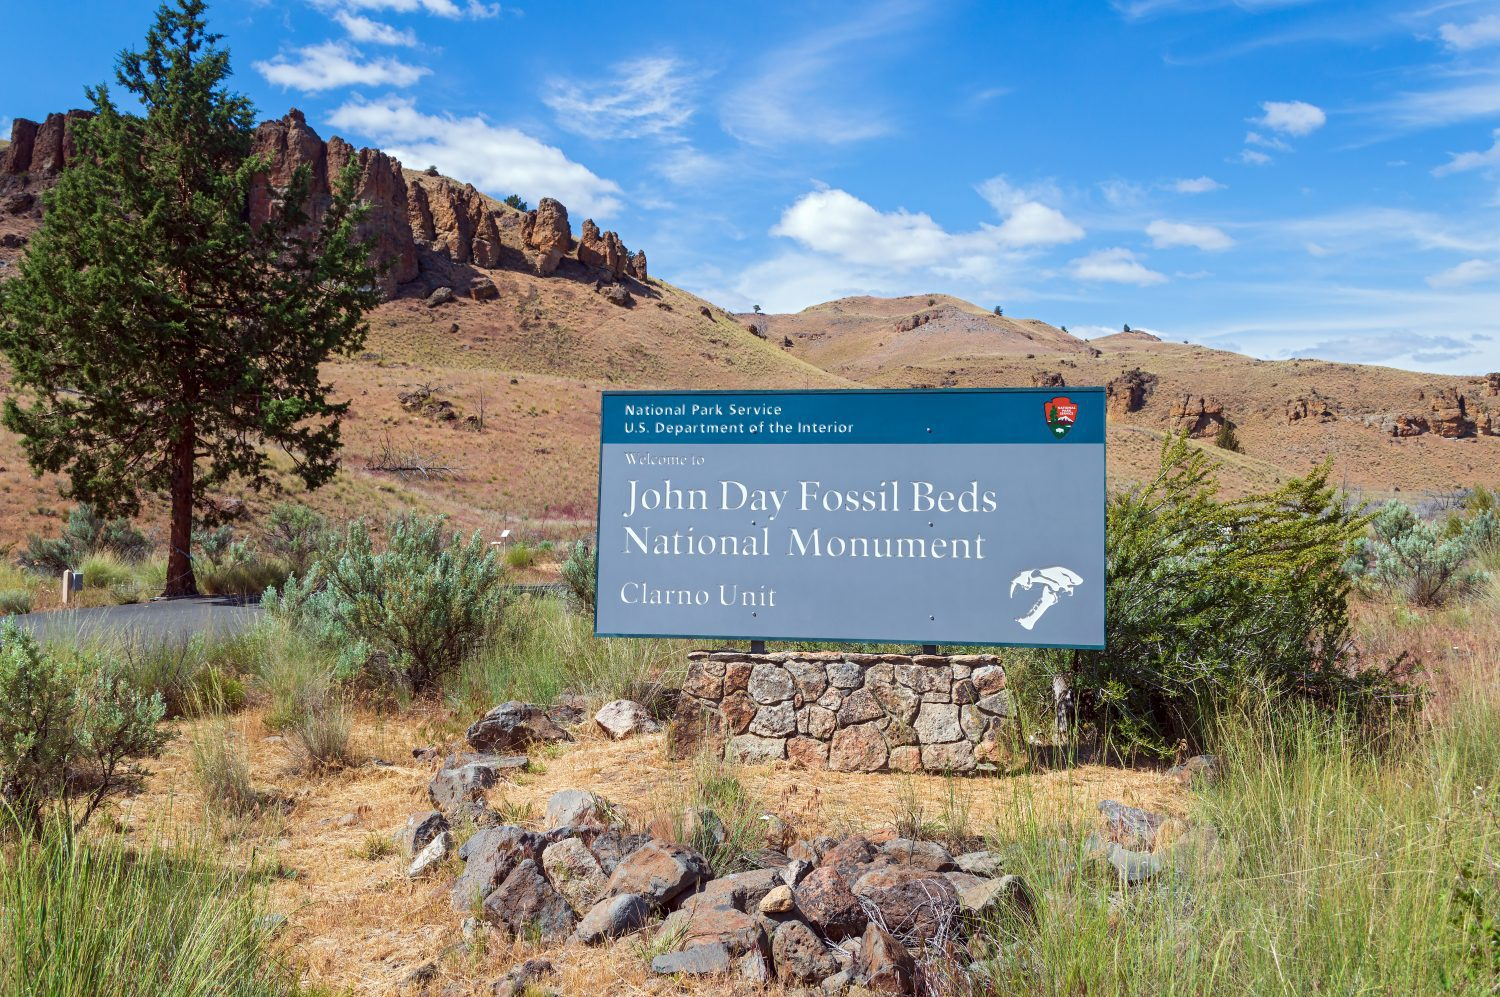 John Day Fossil Bed Travel Information Provided by Happy Campers RV Rentals